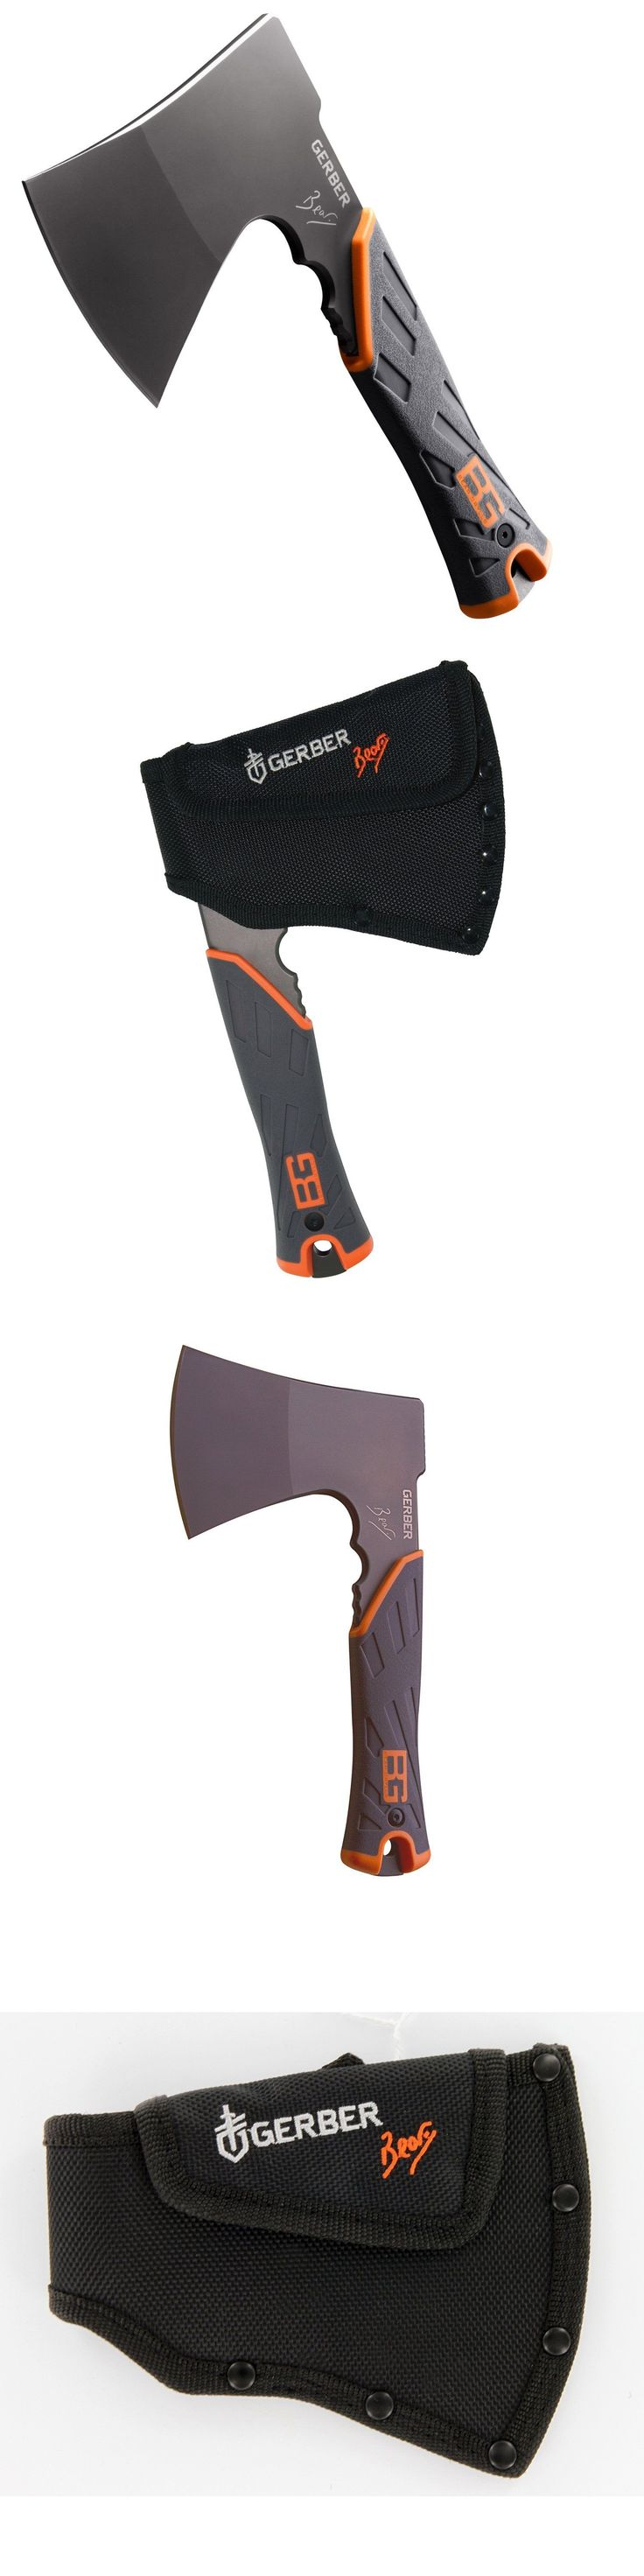 Camping Hatchets and Axes 75234: Gerber Bear Grylls Survival Hatchet With Sheath - Free Shipping -> BUY IT NOW ONLY: $34.5 on eBay!